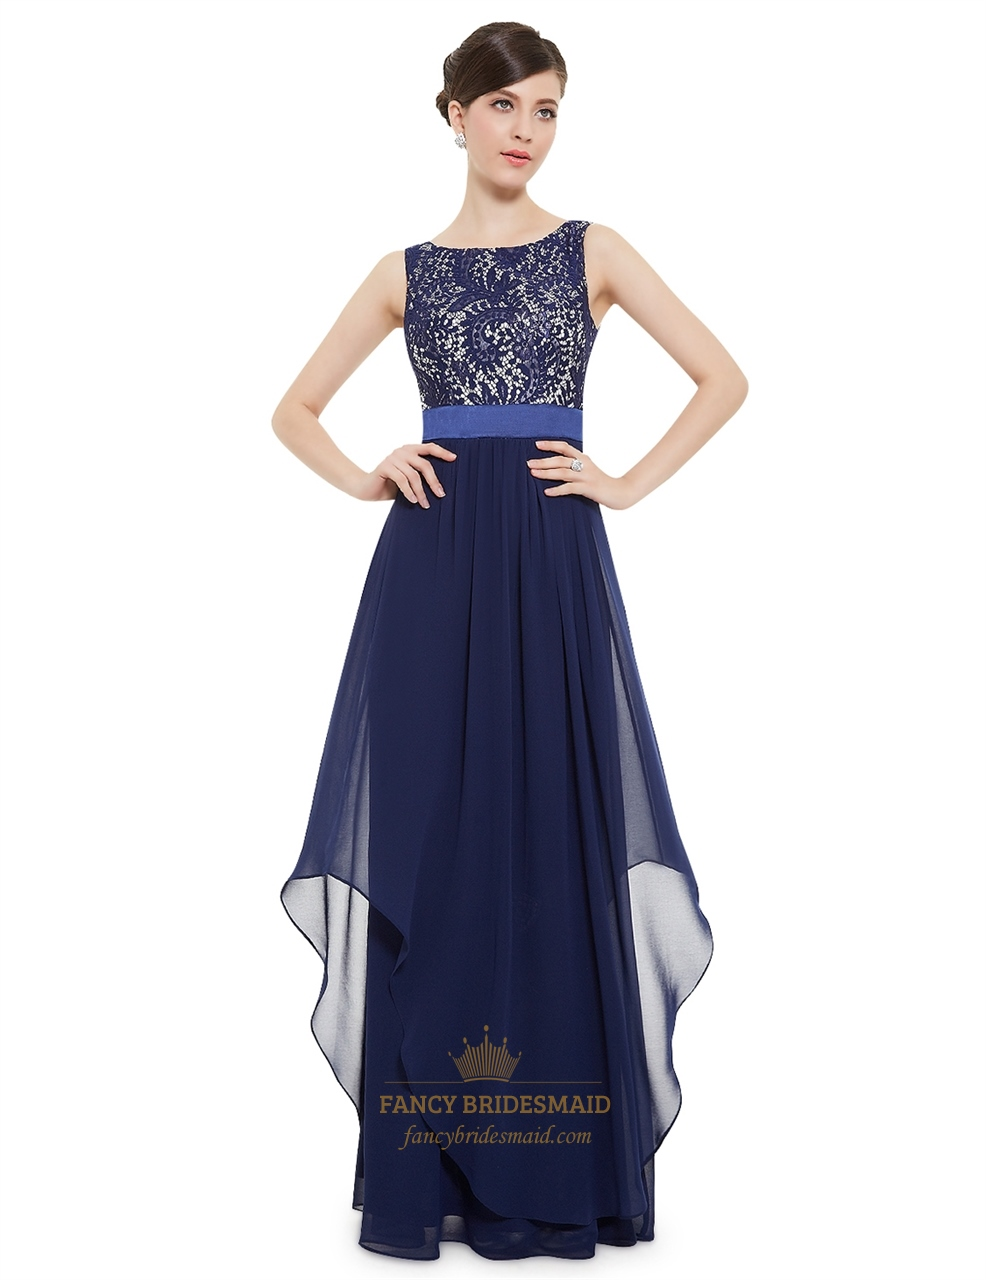 Elegant navy blue chiffon long bridesmaid dresses with lace bodice elegant navy blue chiffon long bridesmaid dresses with lace bodice ombrellifo Choice Image